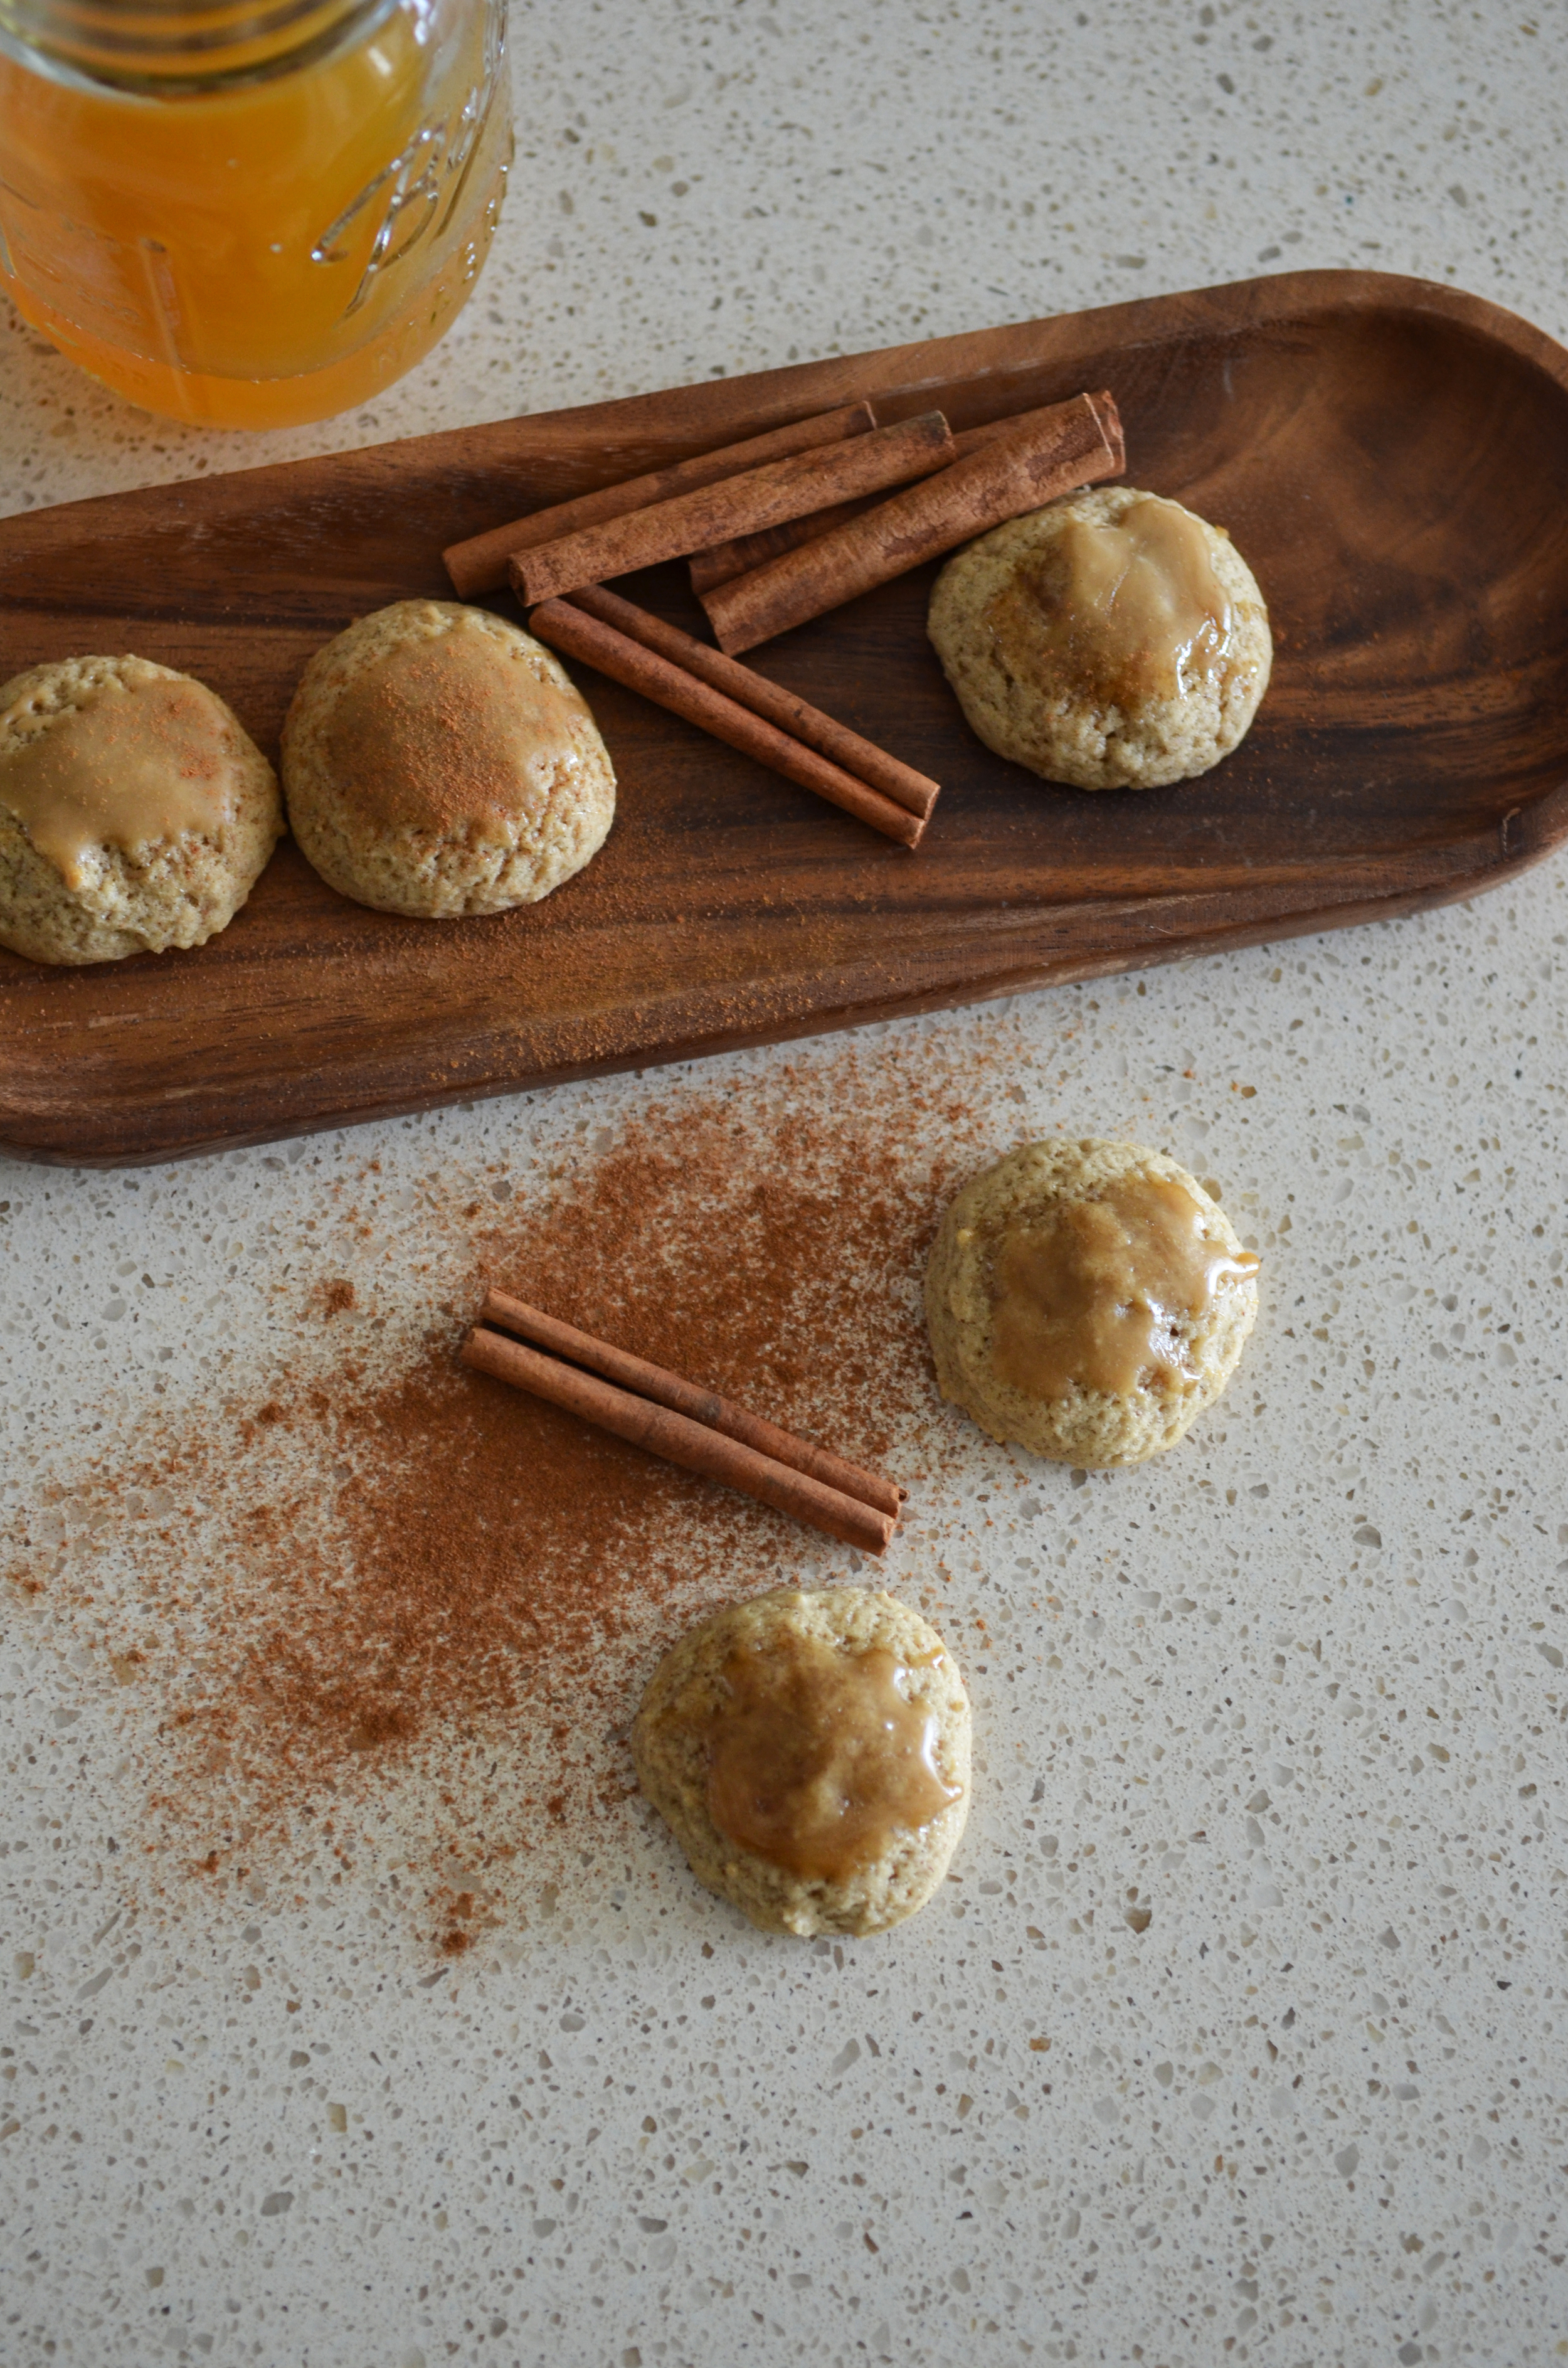 Exuding warmth of autumn. Cider cookies and cinnamon.